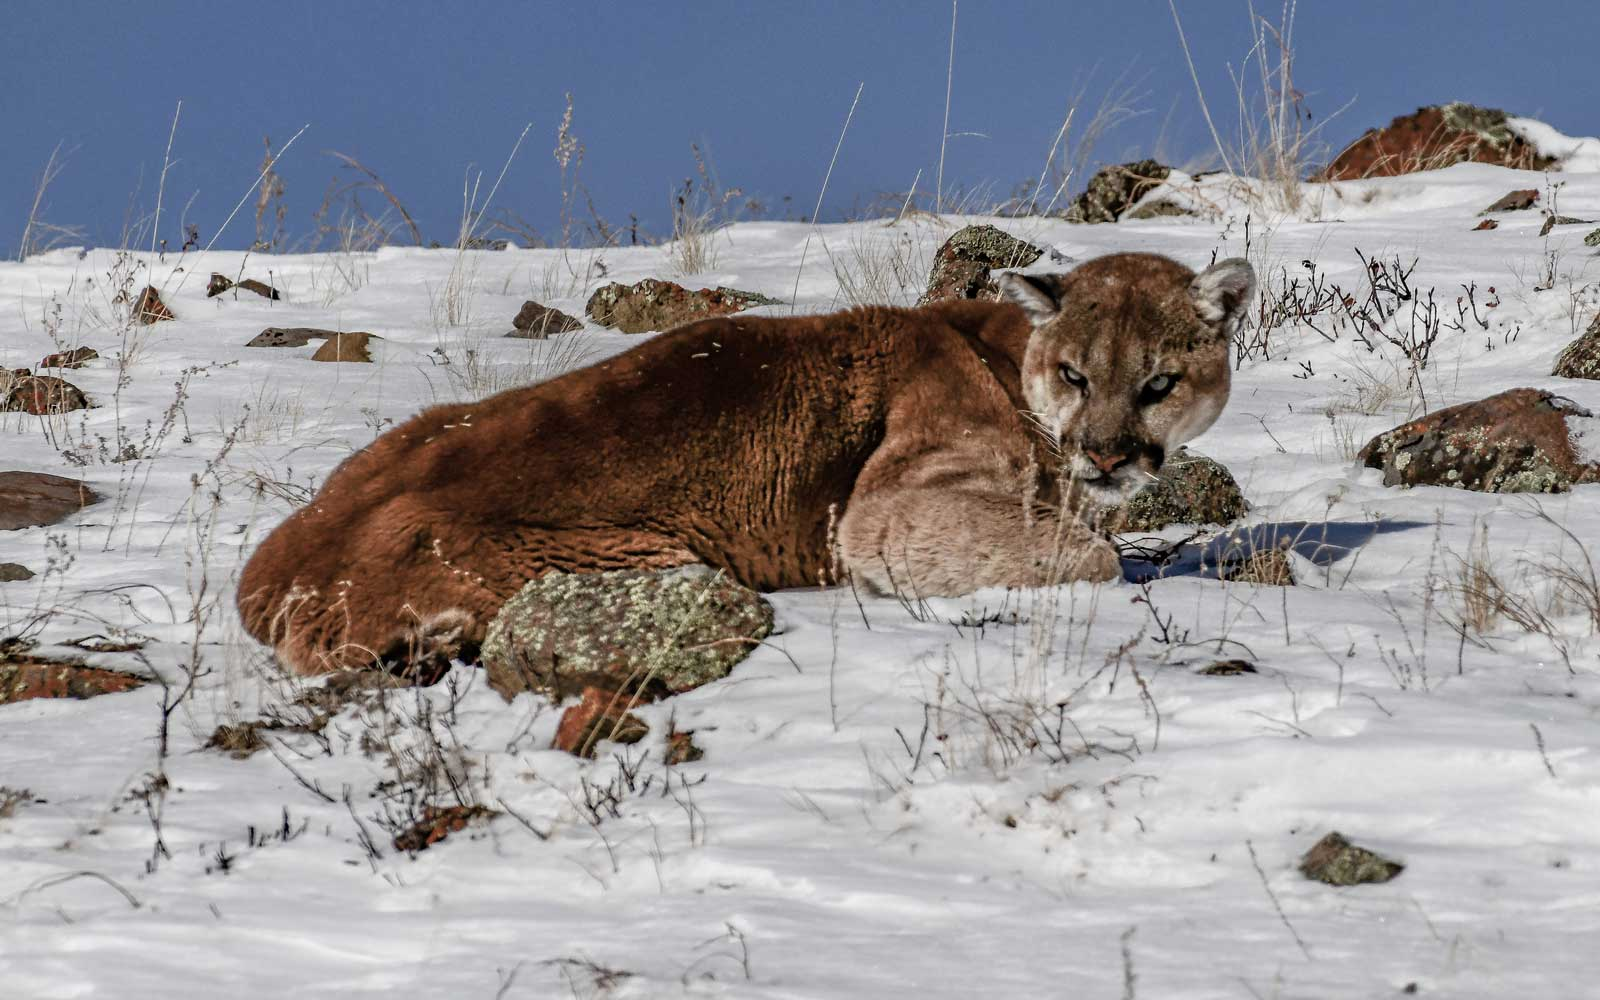 Men Who Hunted and Killed a Mountain Lion at Yellowstone Ordered to Pay Restitution